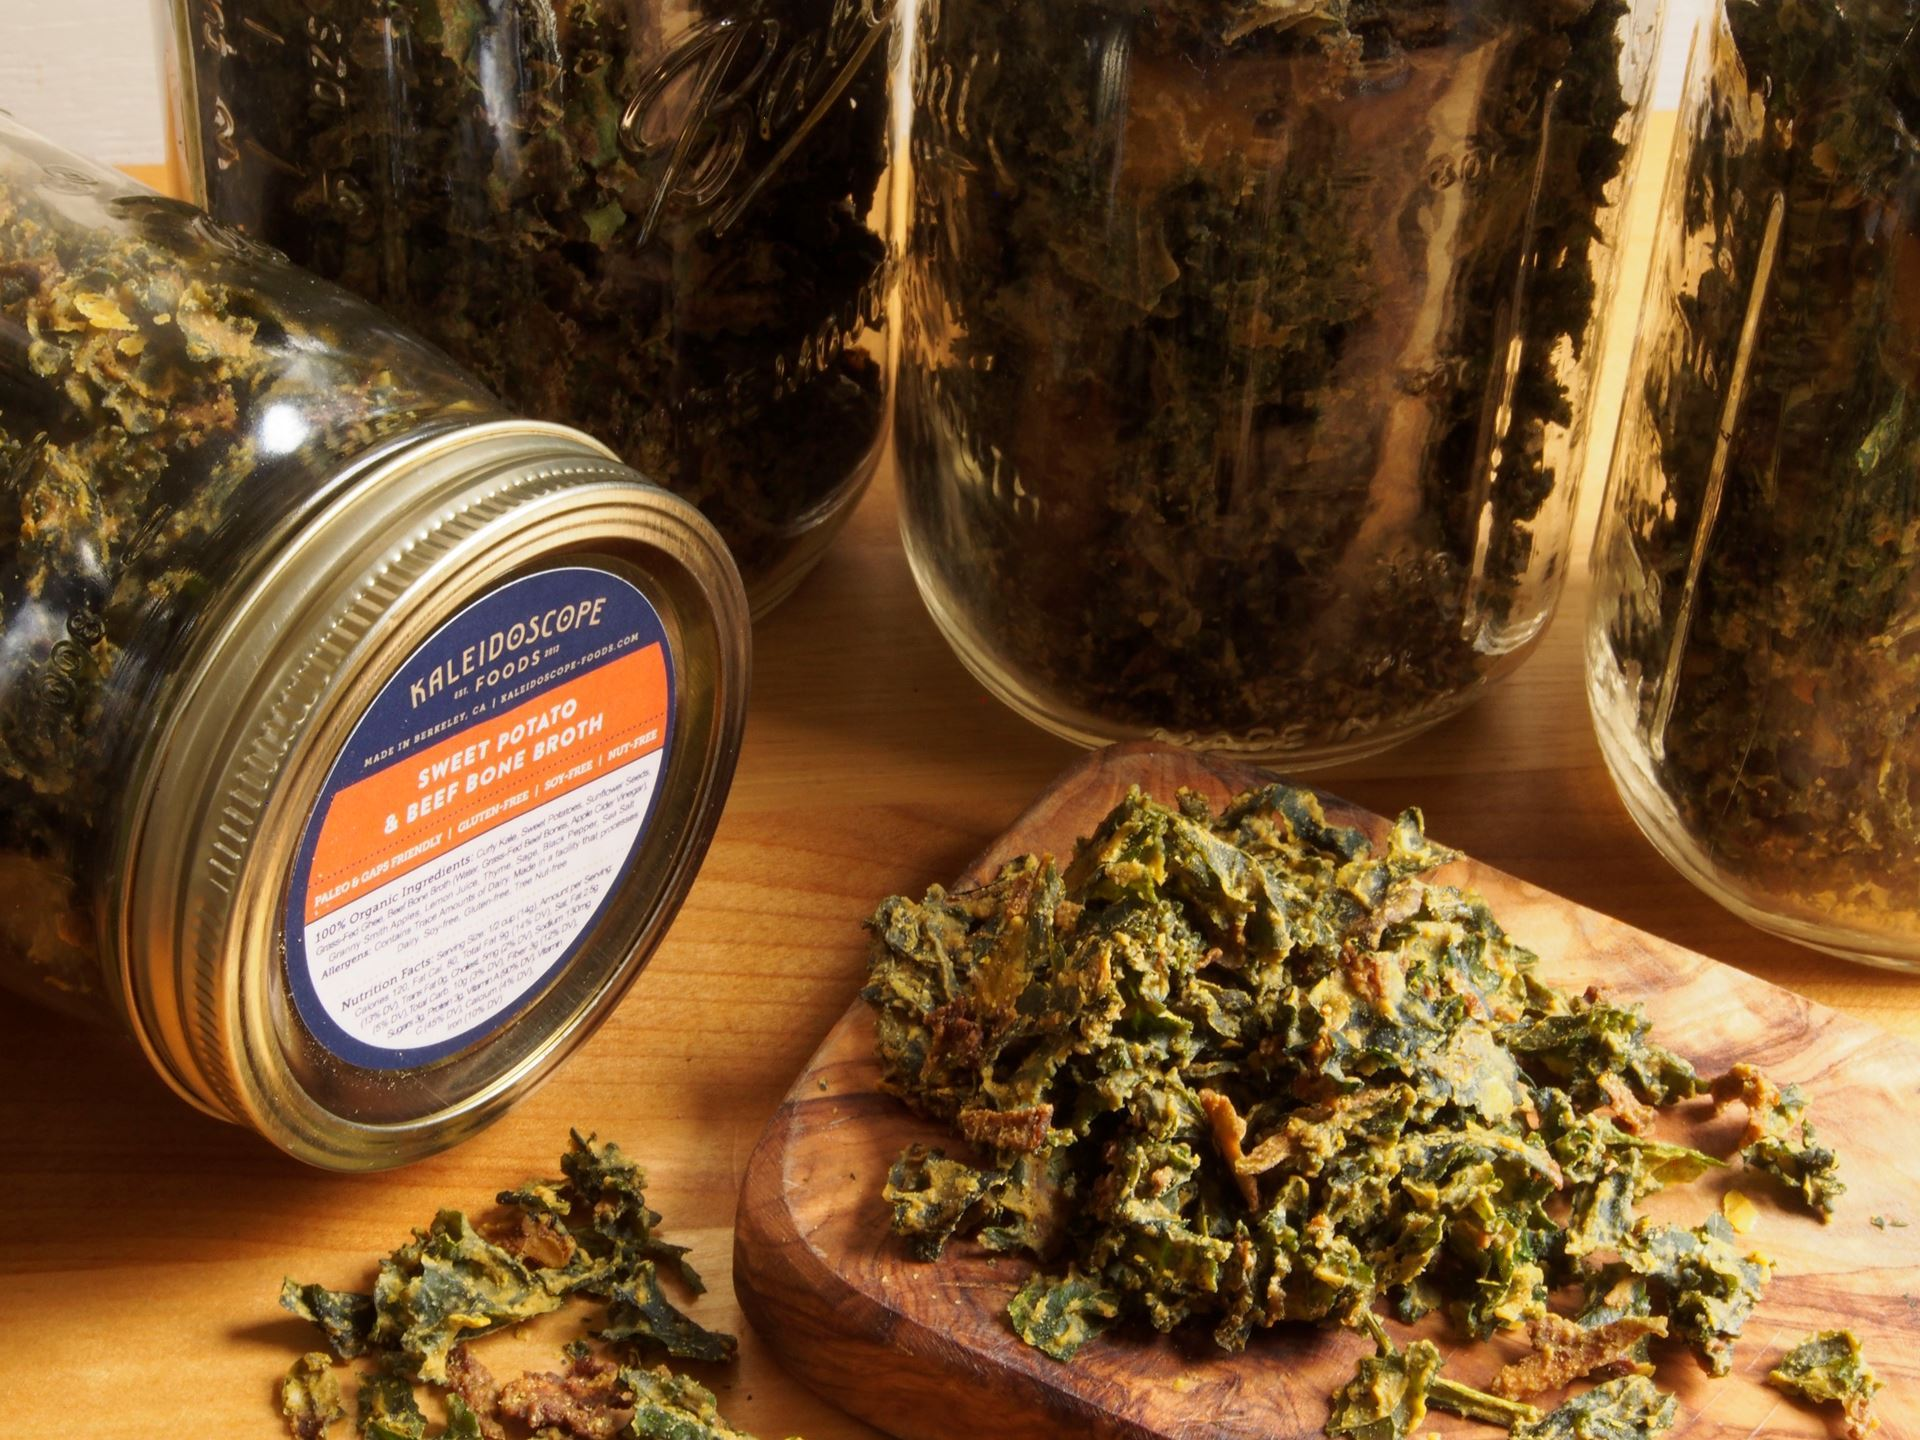 Picture of Kale Chips Quart JAR: Spicy Seaweed with Dates & Bison Bone Broth by Kaleidoscope